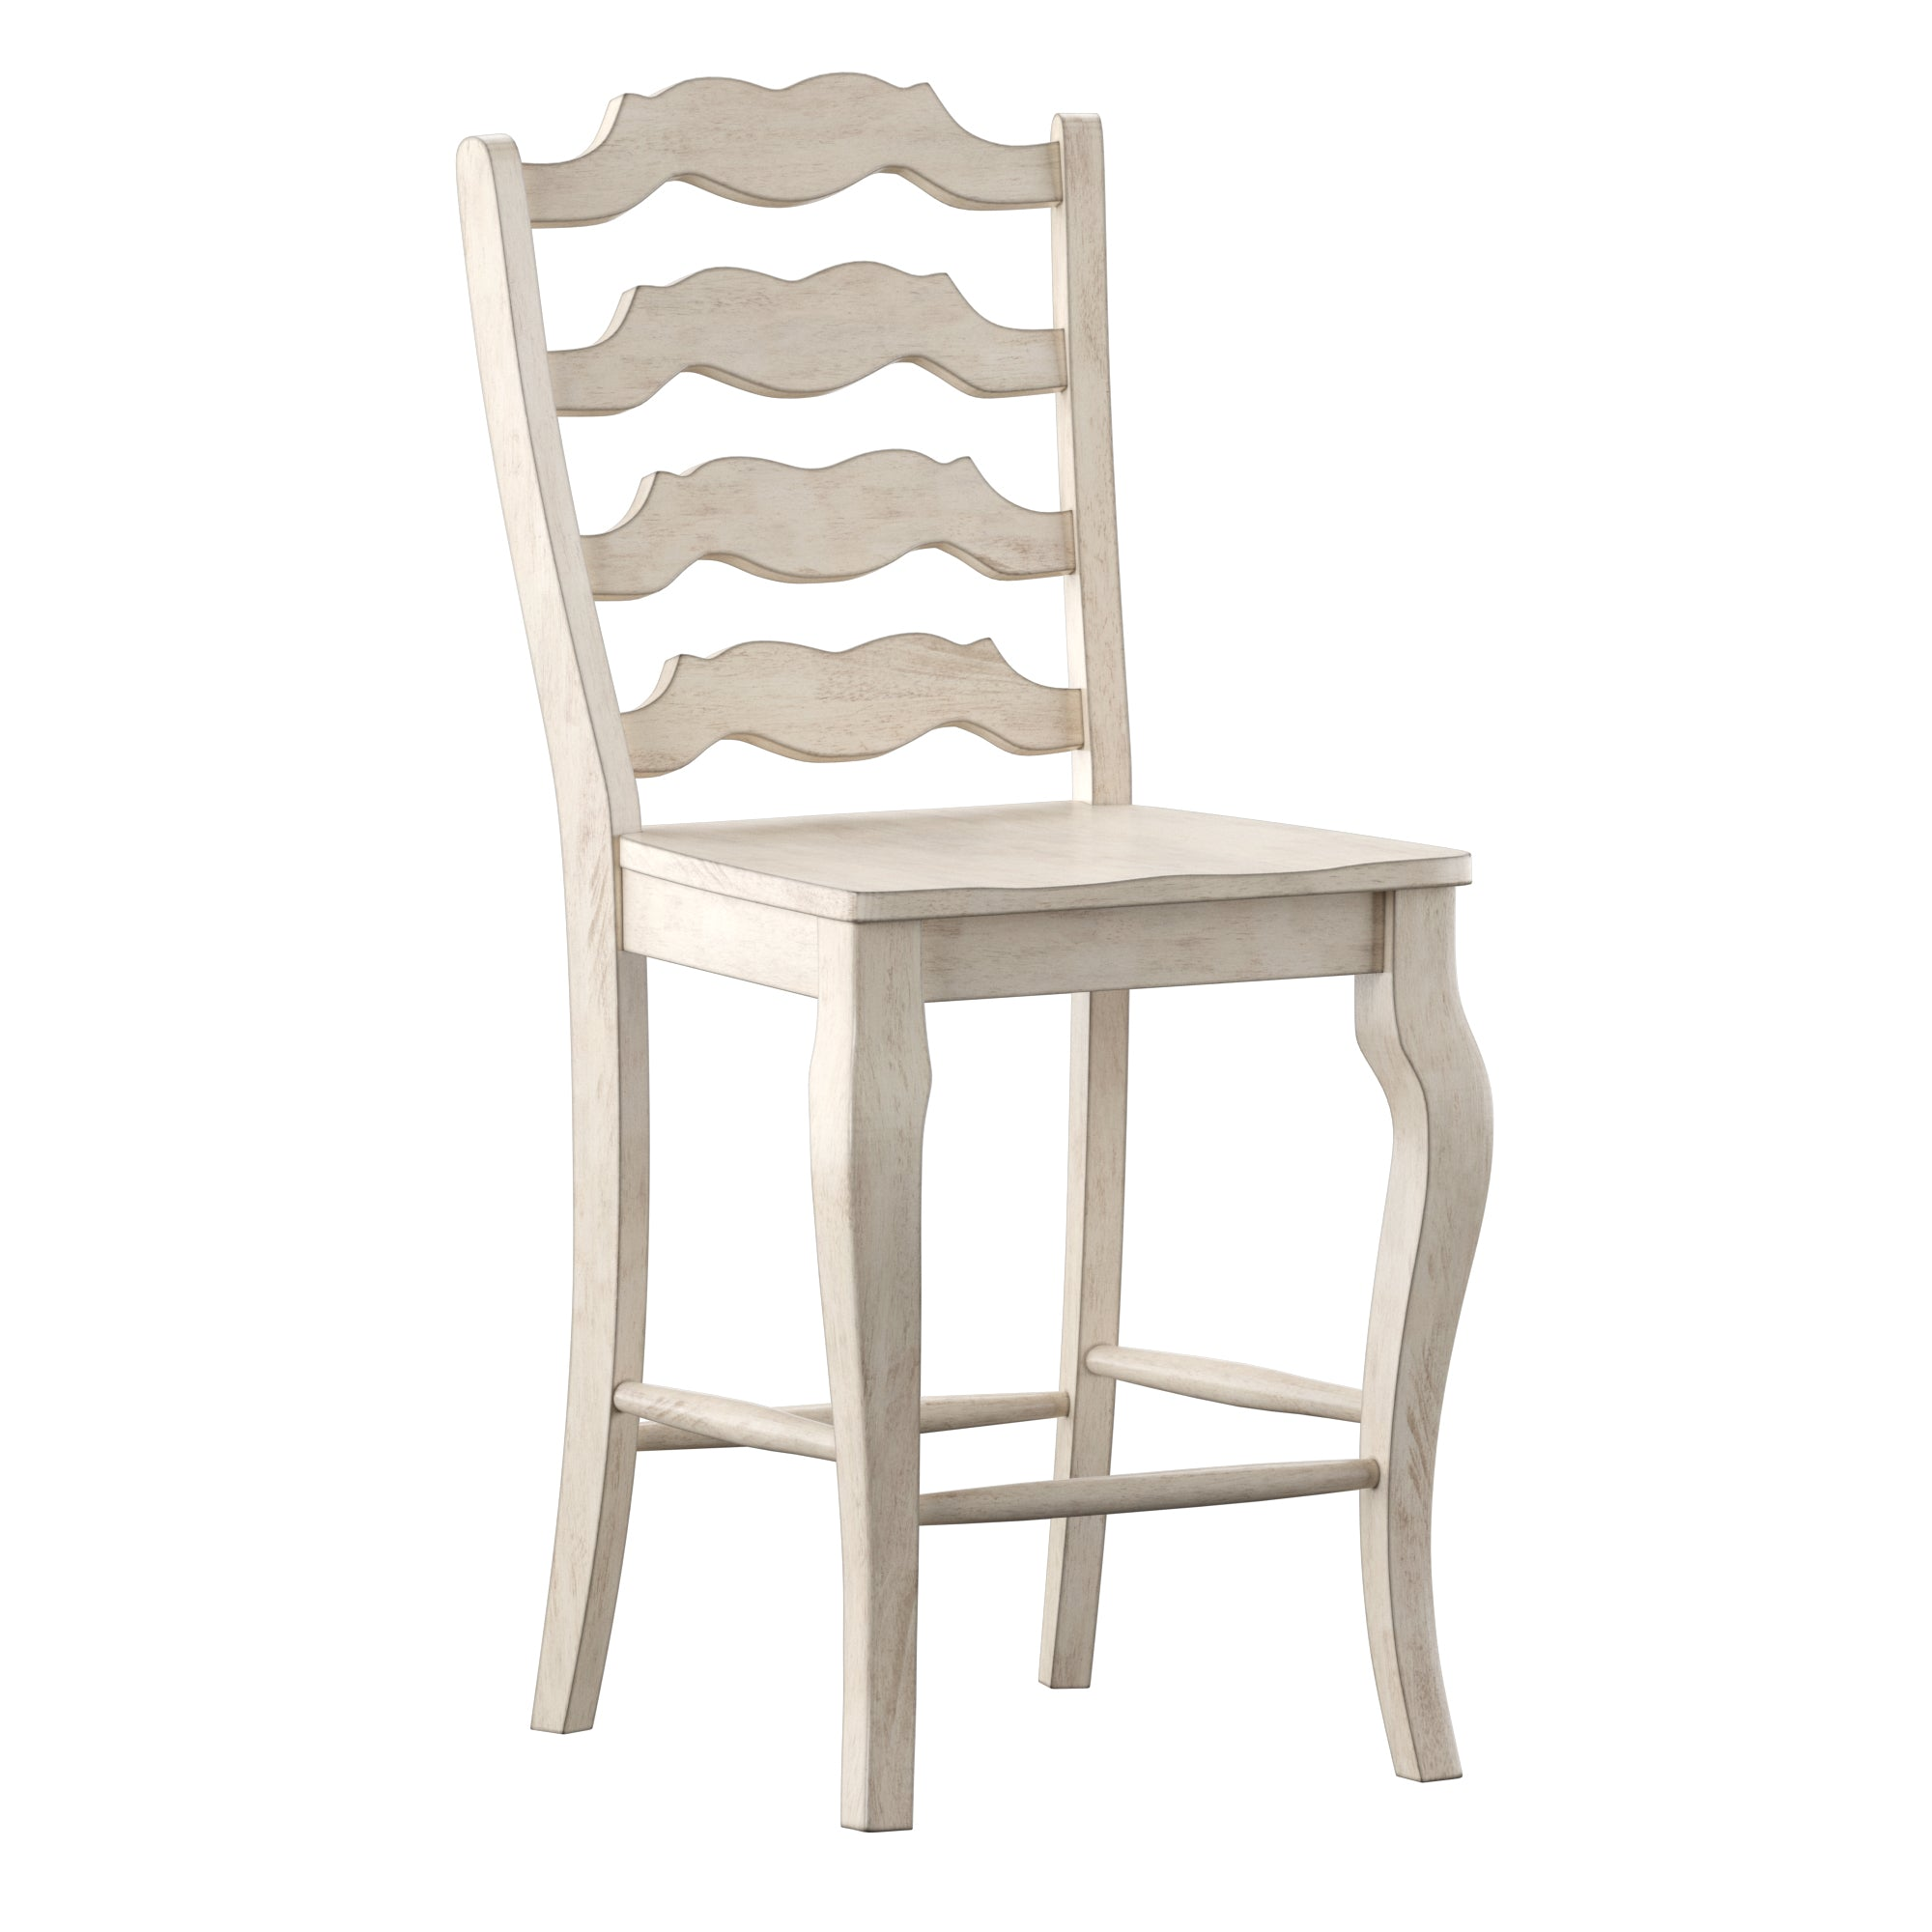 French Ladder Back Wood Counter Height Chair (Set of 2) - Antique White